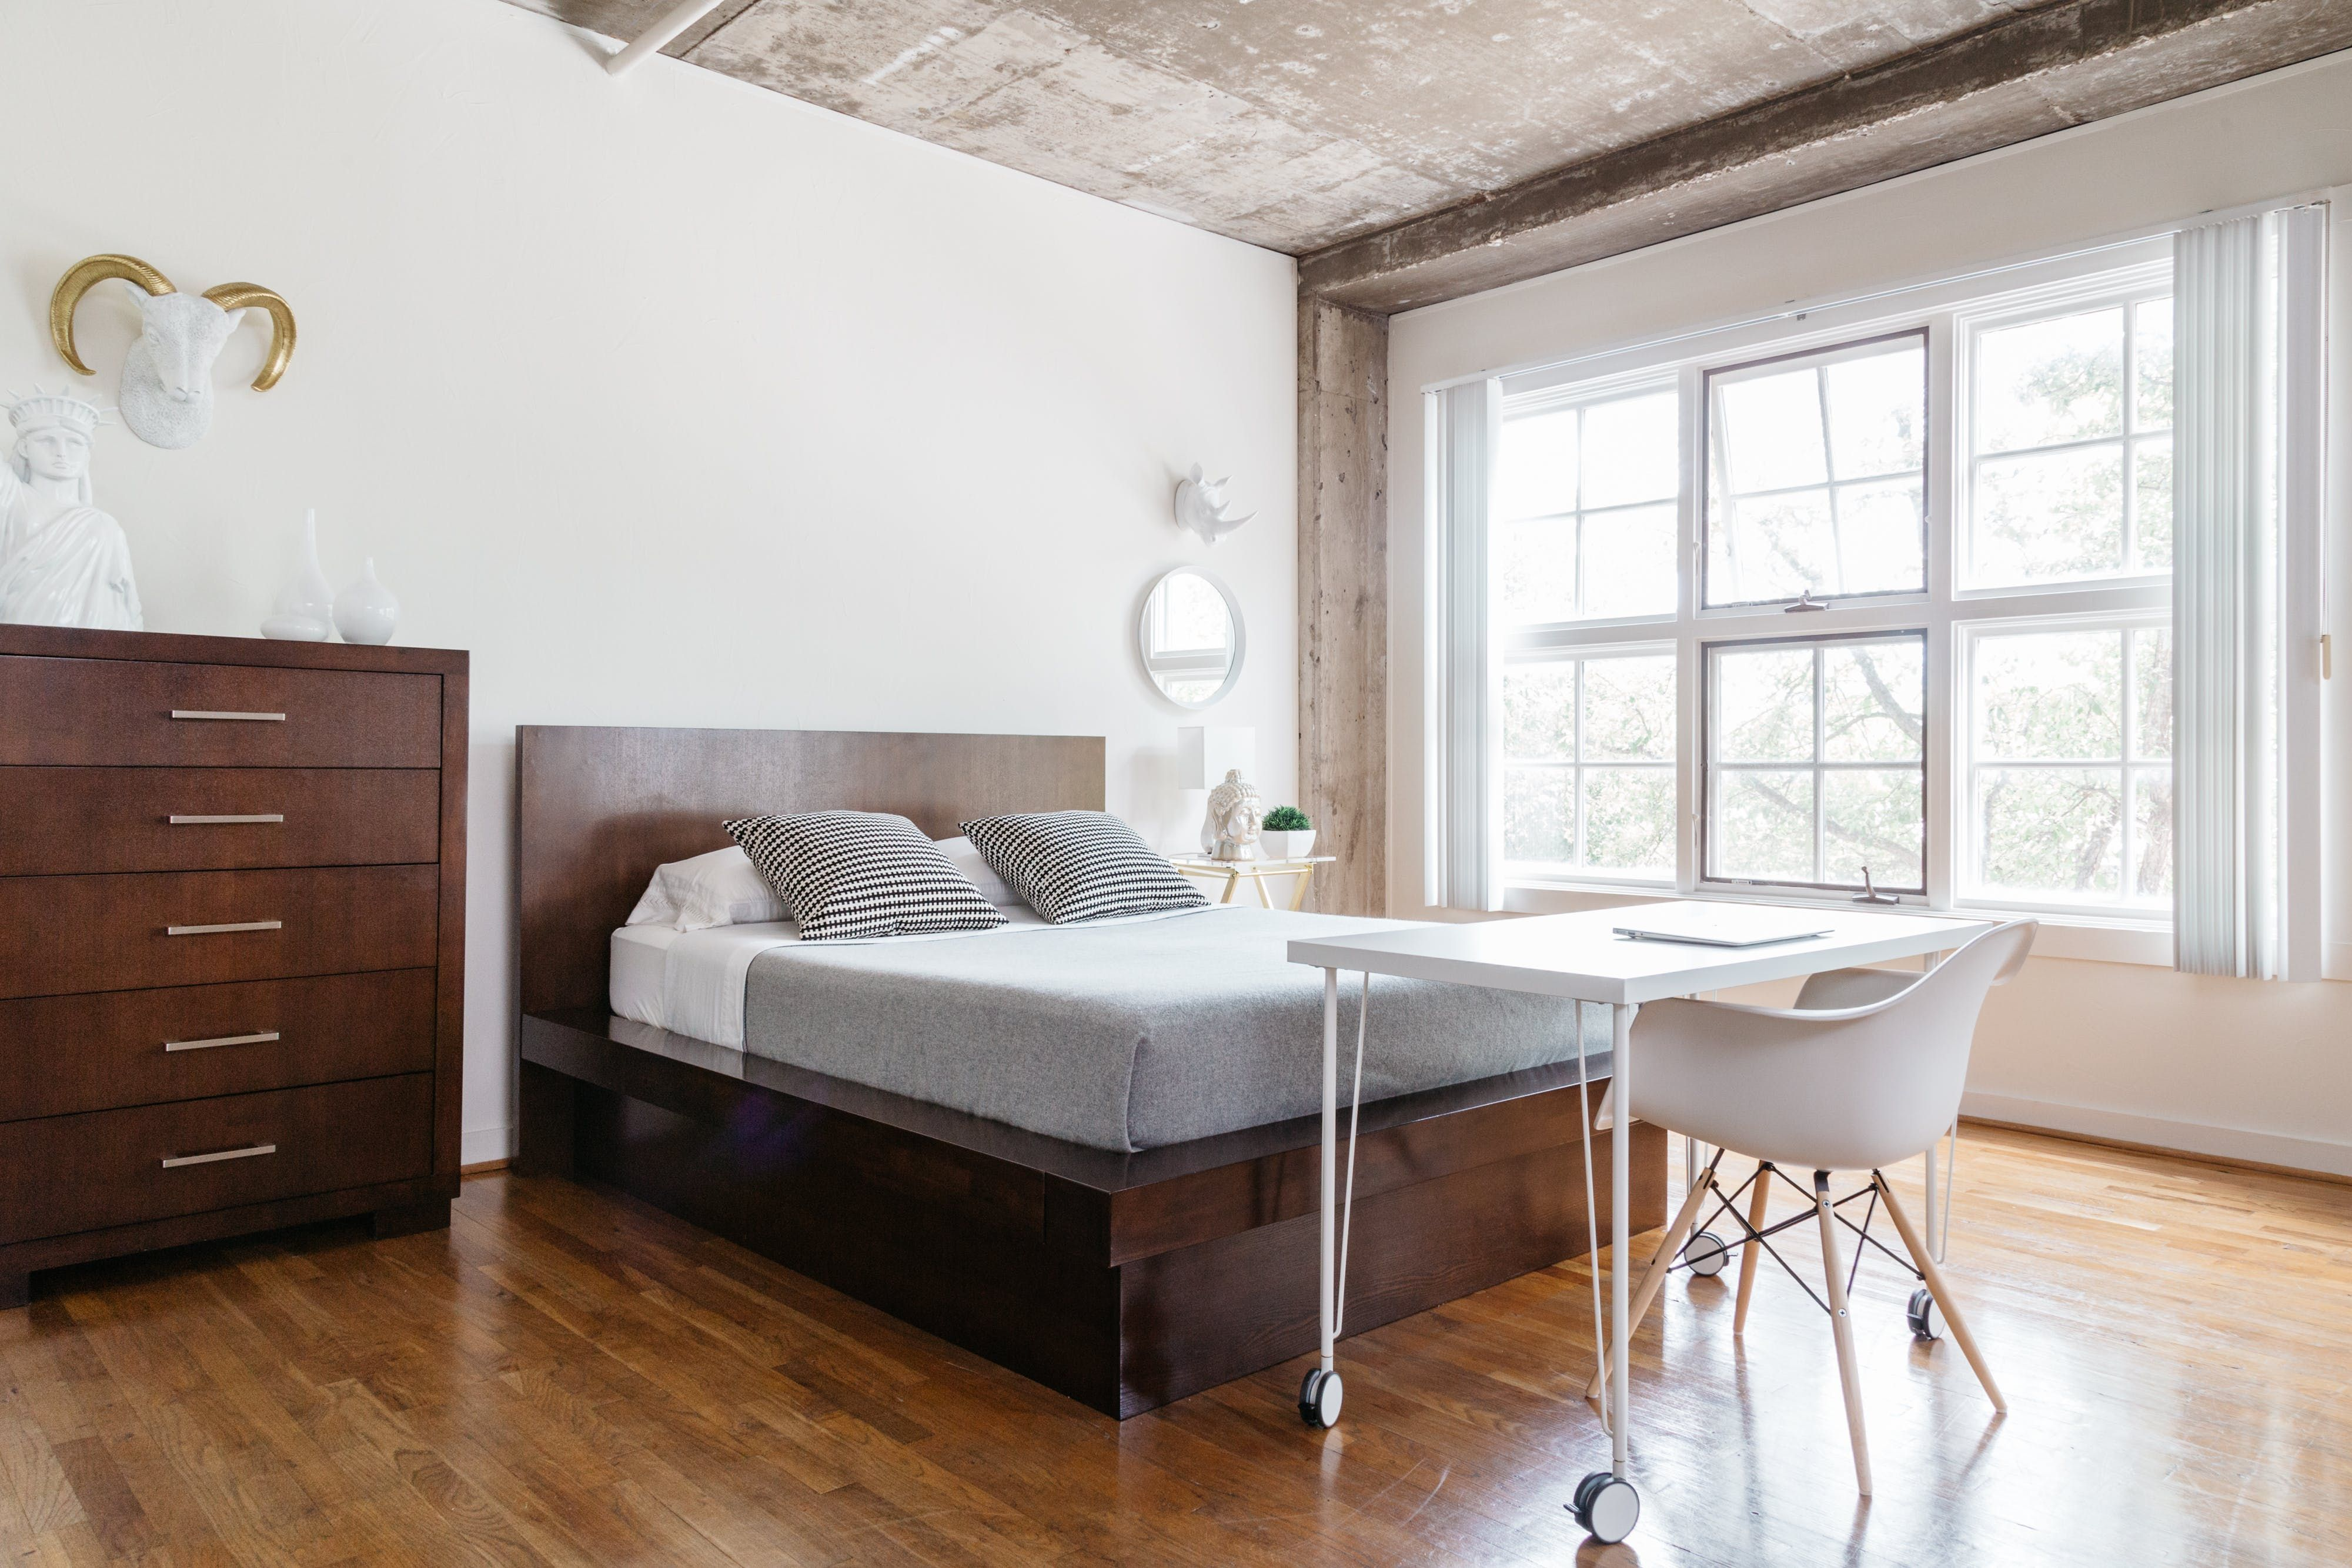 Loft style bedroom ideas  Real People Share What Influences Them to Live u Design Minimally